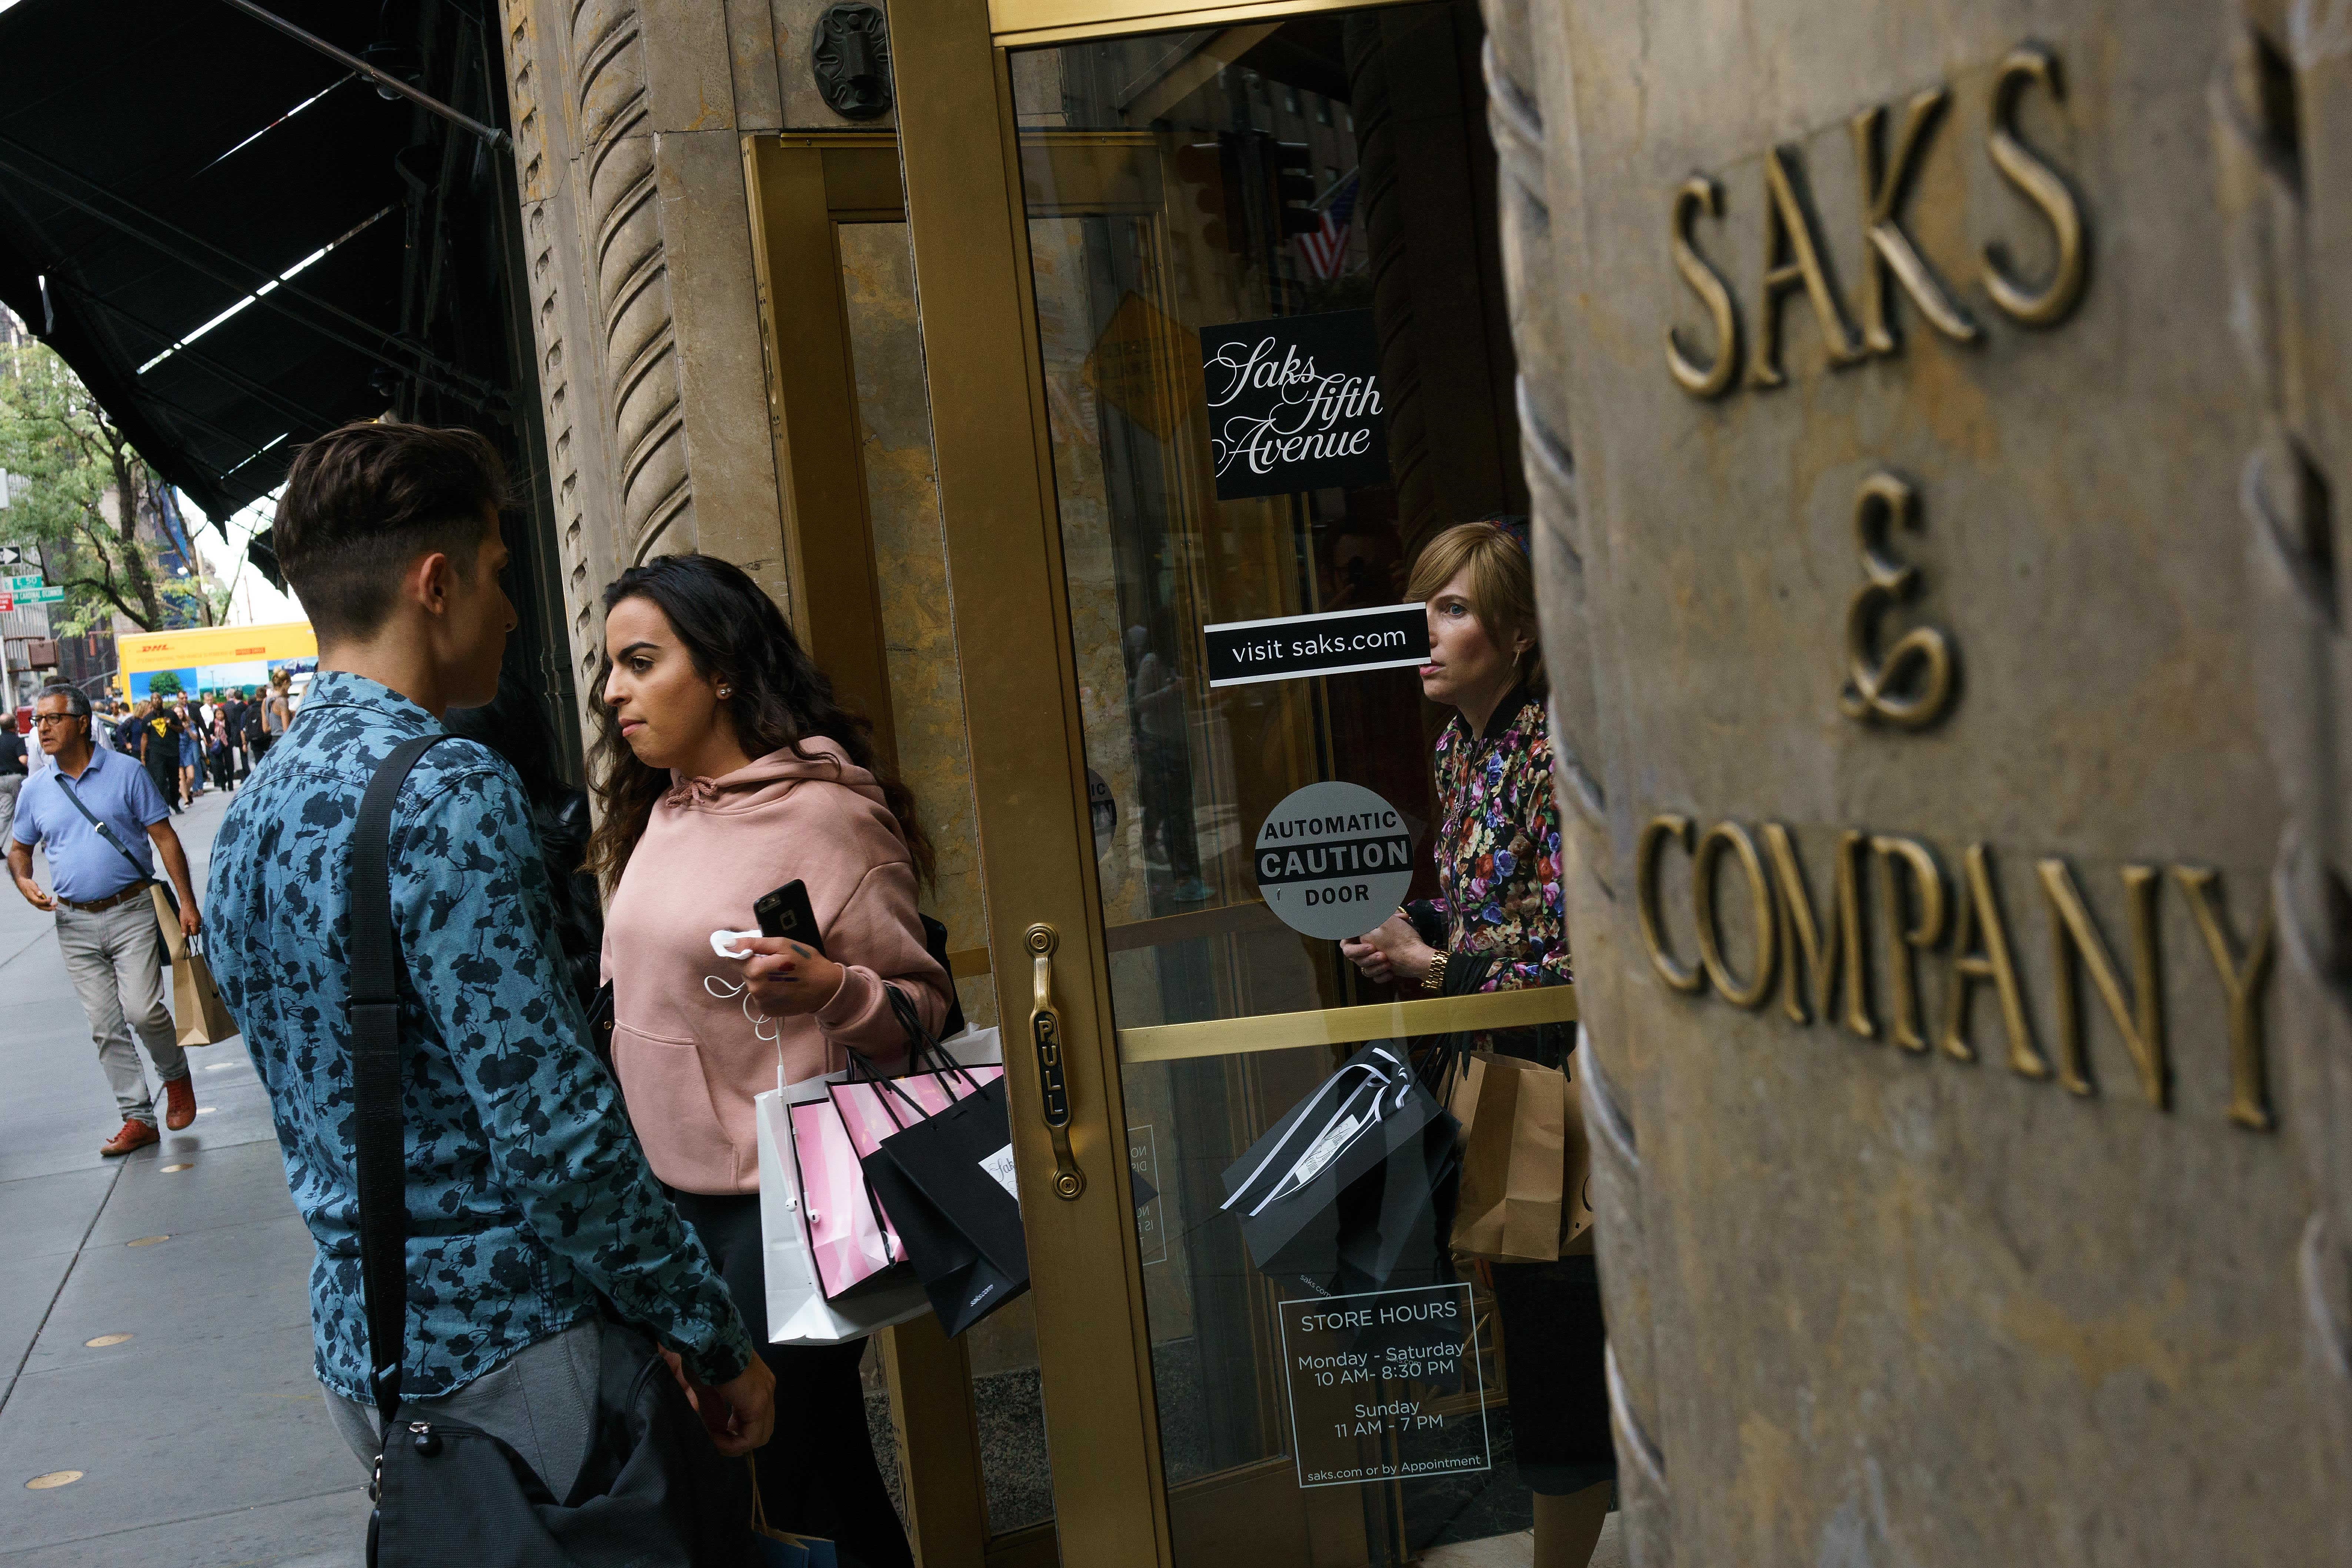 Shoppers exit and enter a Saks Fifth Avenue store on Fifth Avenue in New York City.